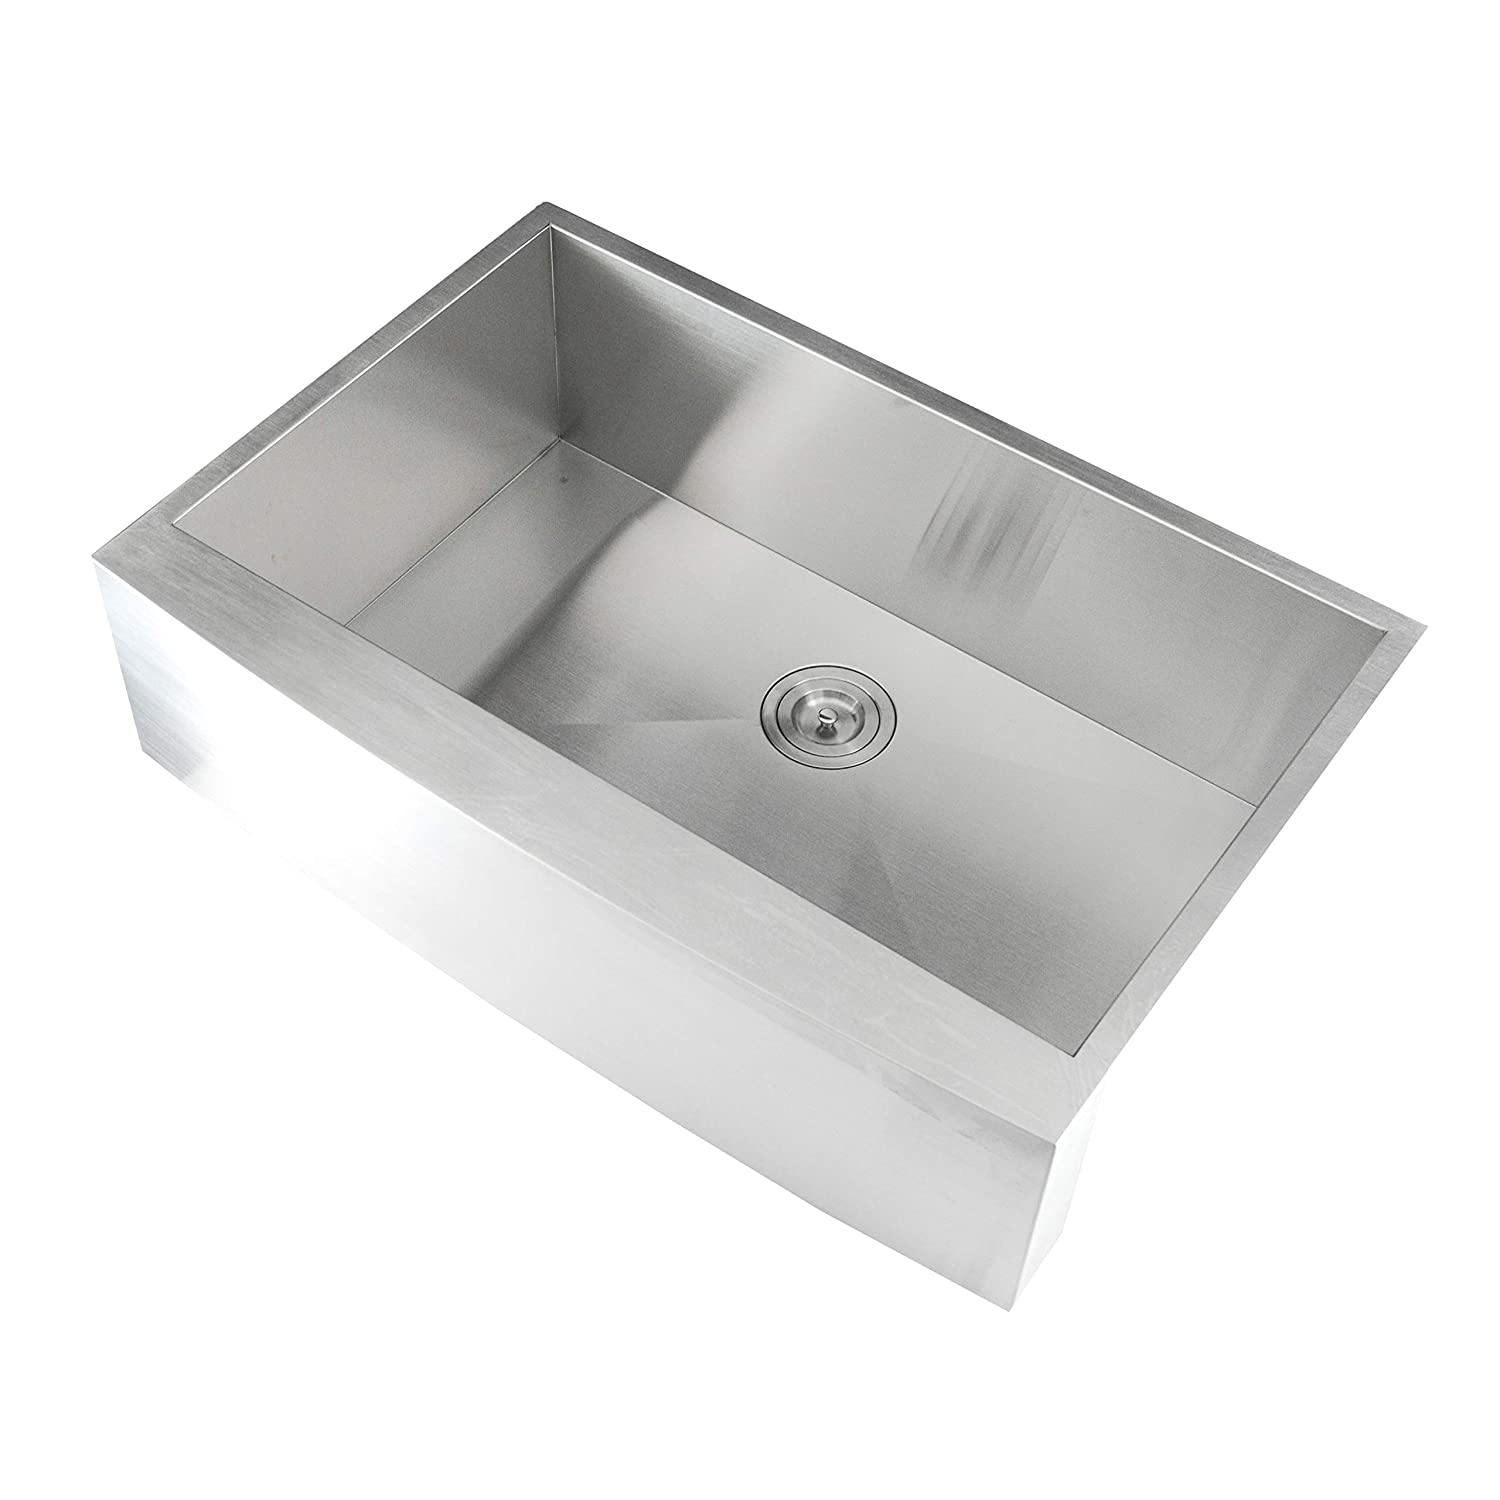 On sale aquarius undermount apronfront farmhouse stainless steel kitchen sink amazon com